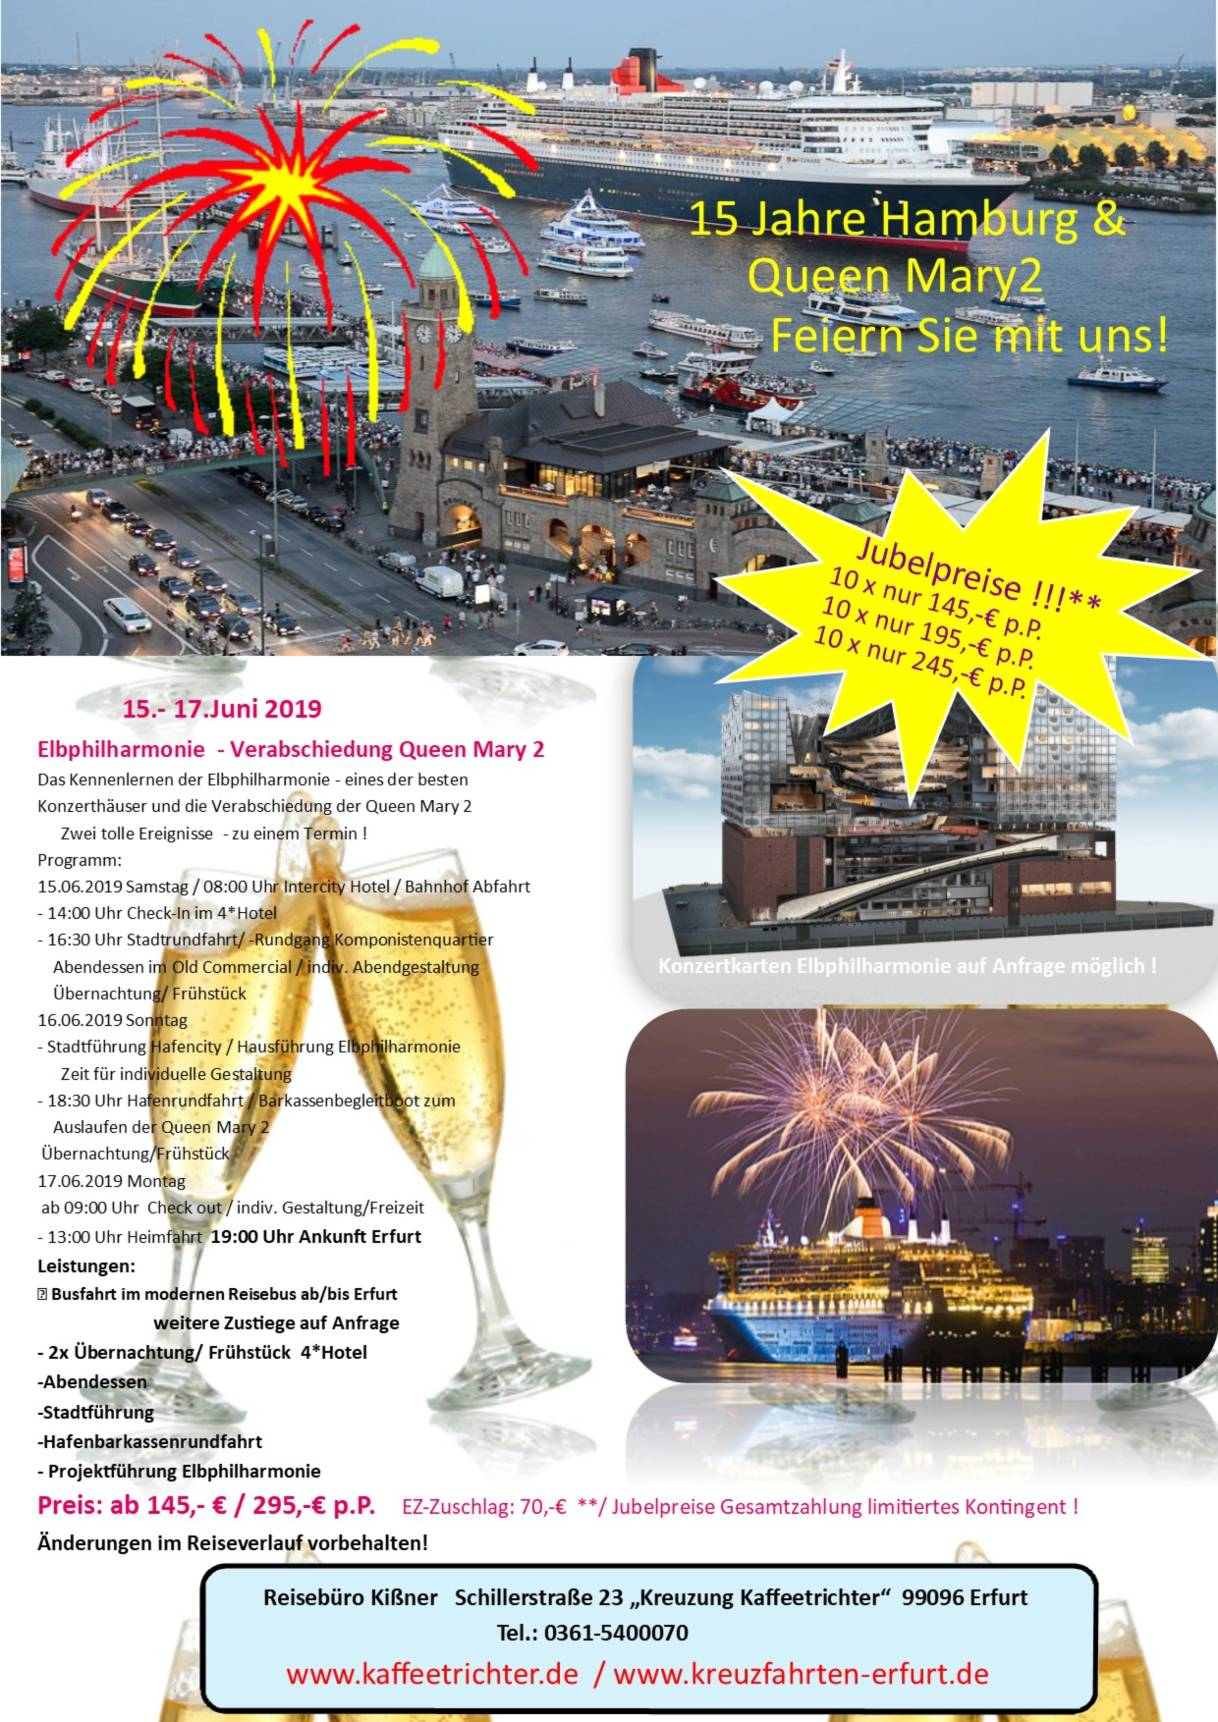 15 Jahre Hamburg & Queen Mary2